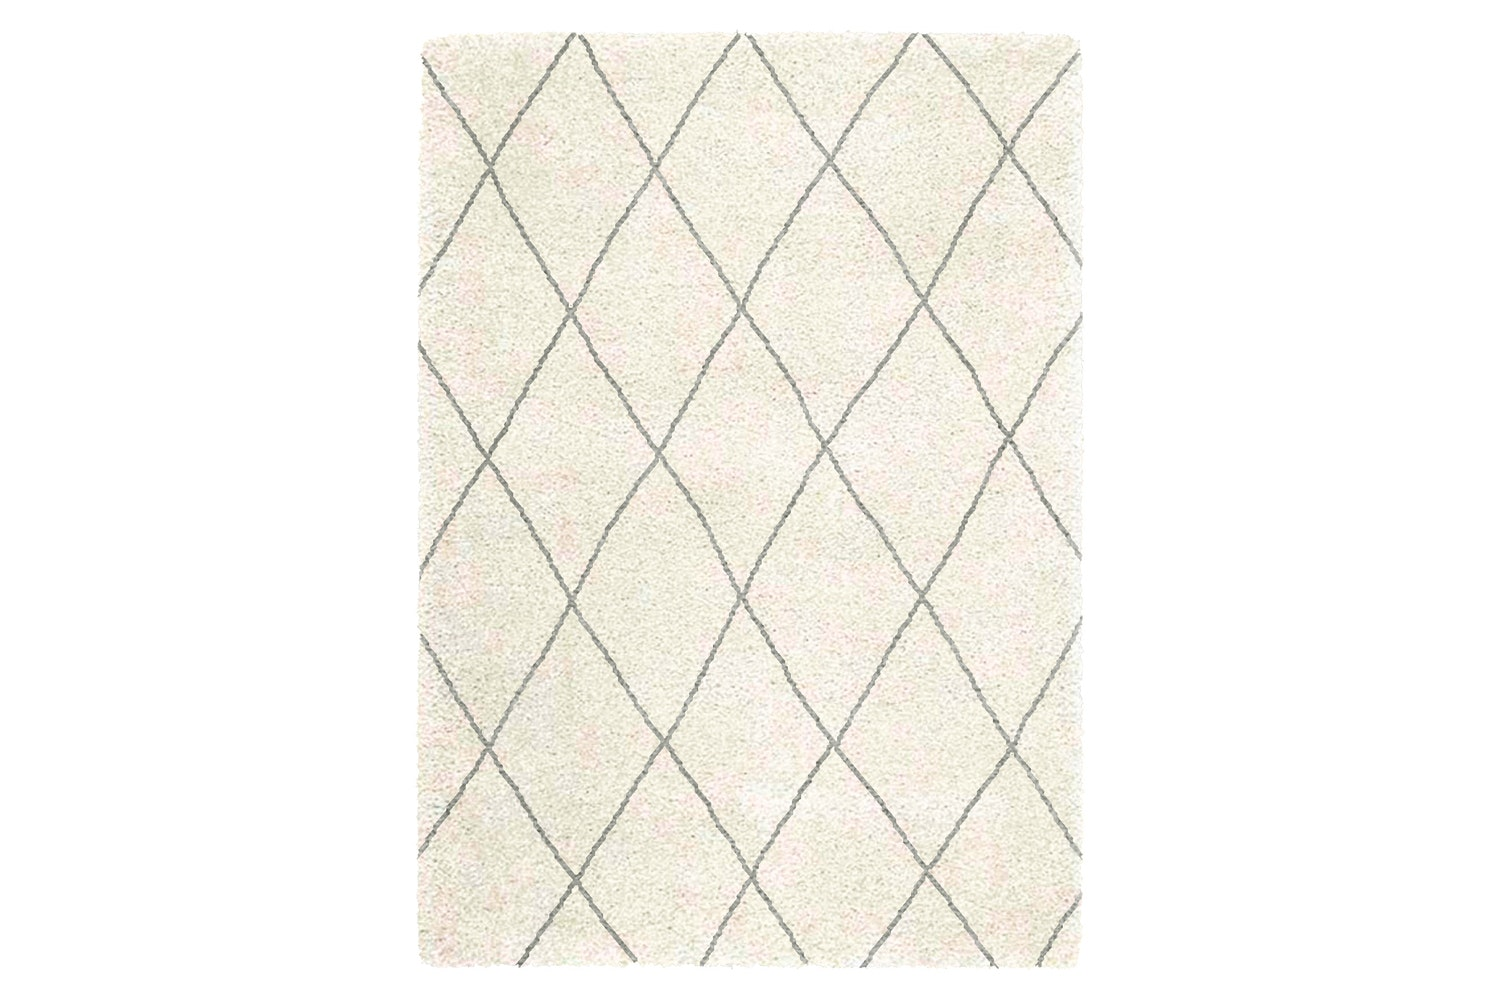 Logan Rug Cream With Grey Lines | 160x230cm